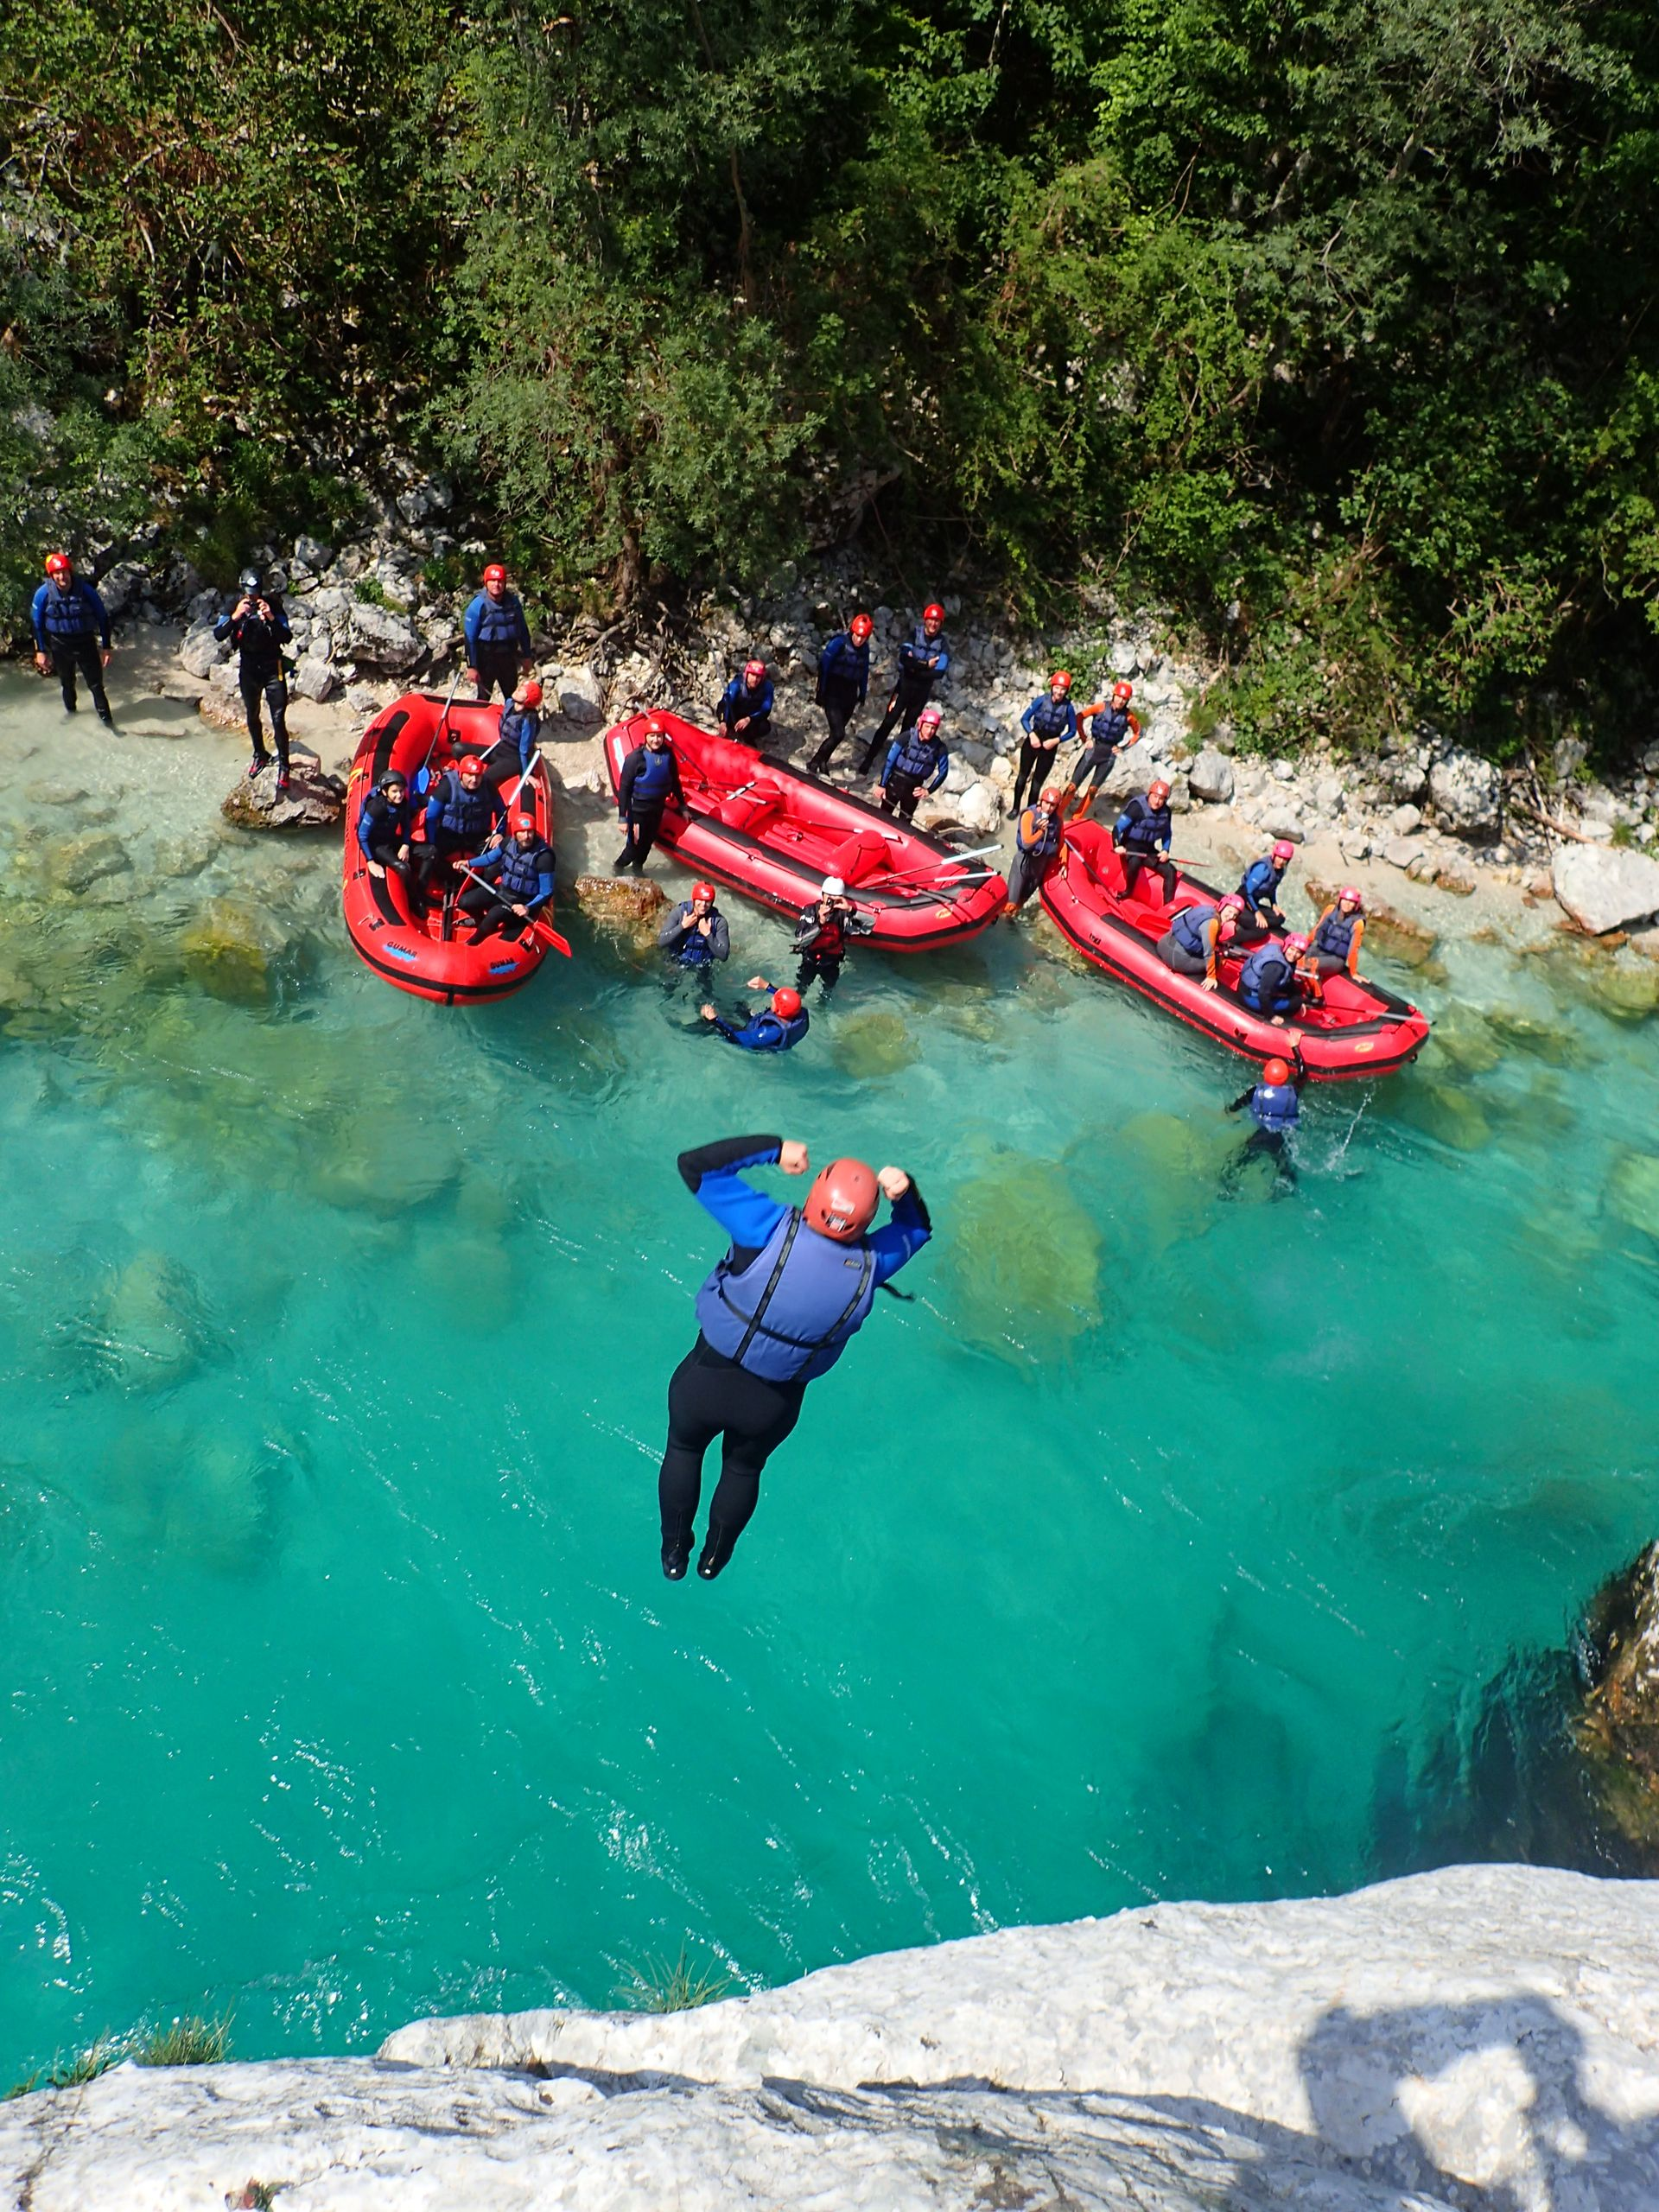 Rafting on Soca river in Bovec Bovec, Slovenia